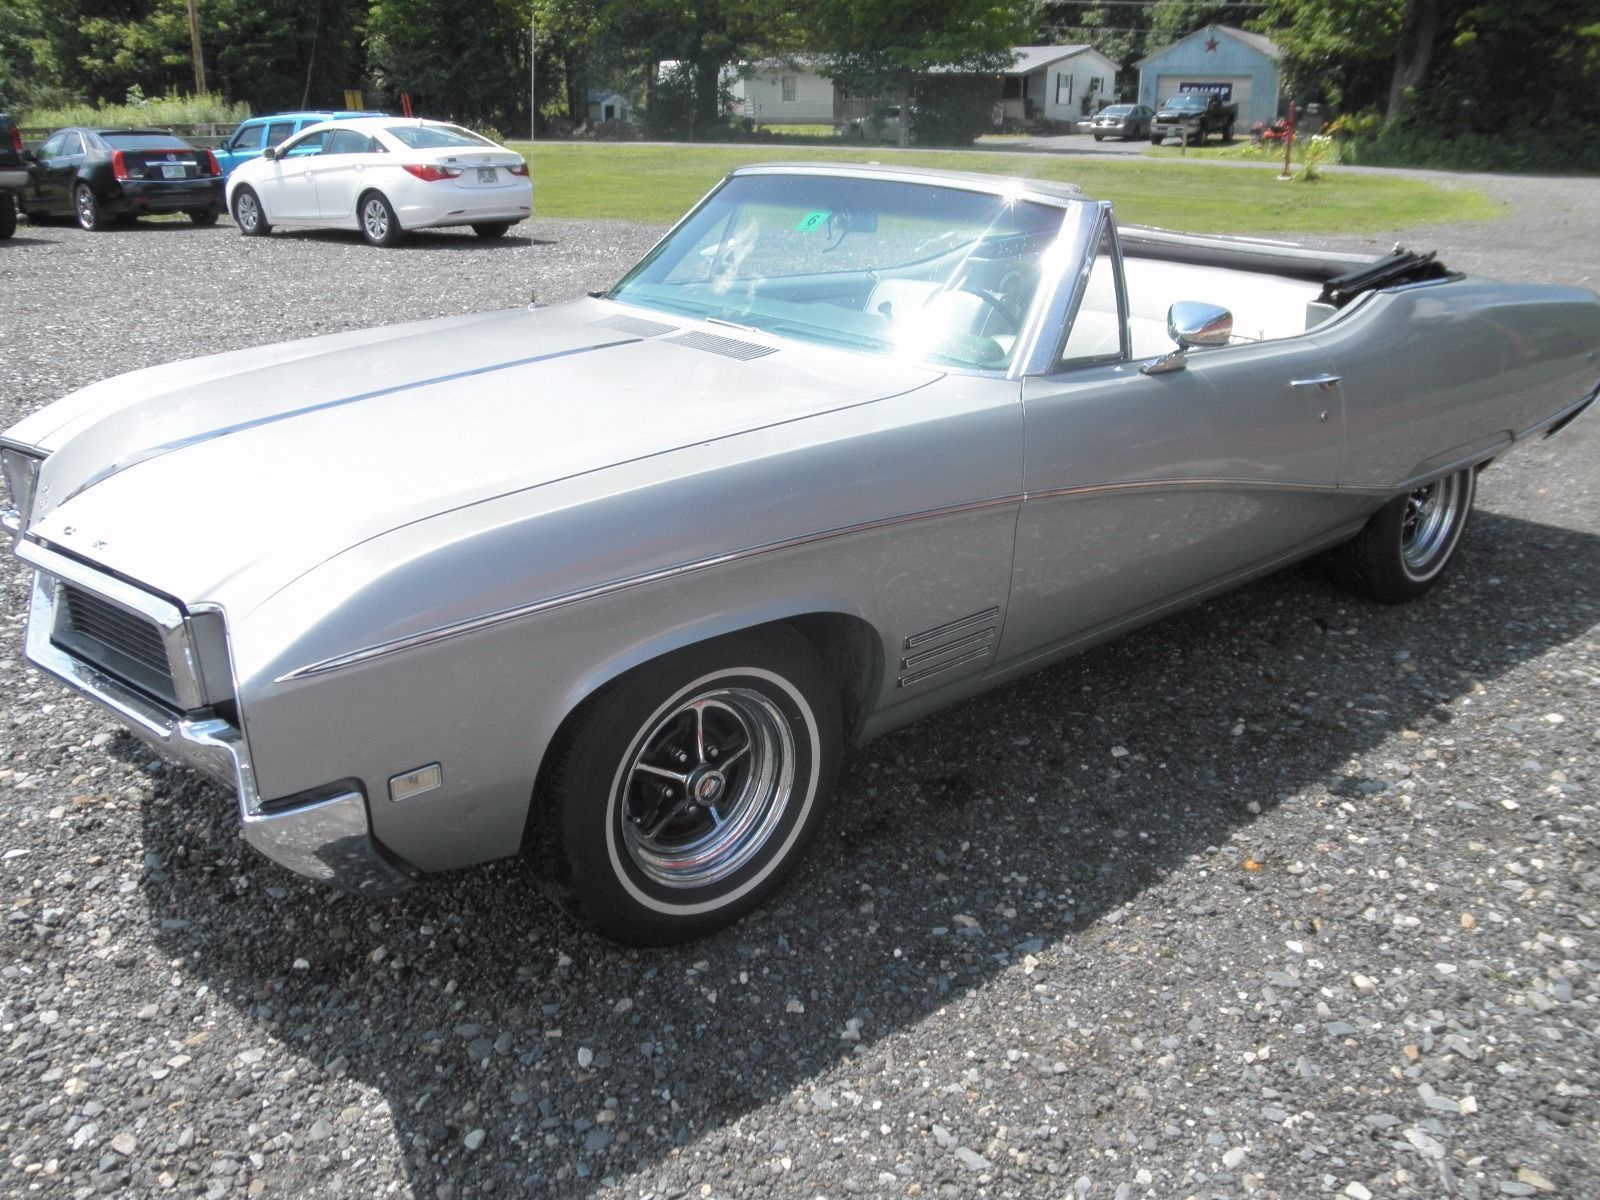 Excellent Condition 1968 Buick Skylark Convertible Buick Skylark Buick Gs Buick